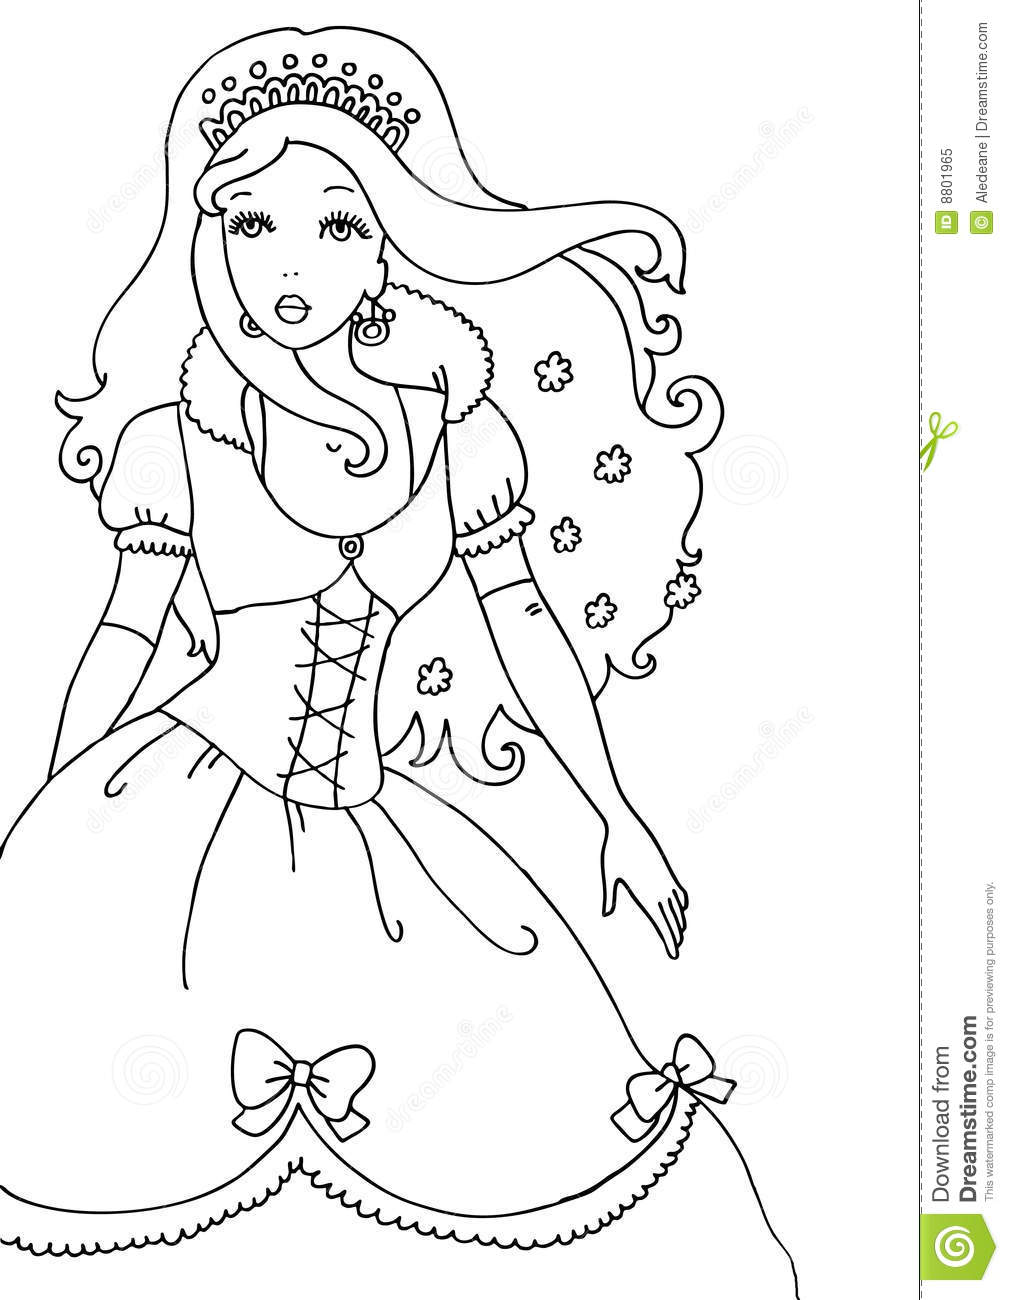 princess coloring page royalty free stock photo image 8801965